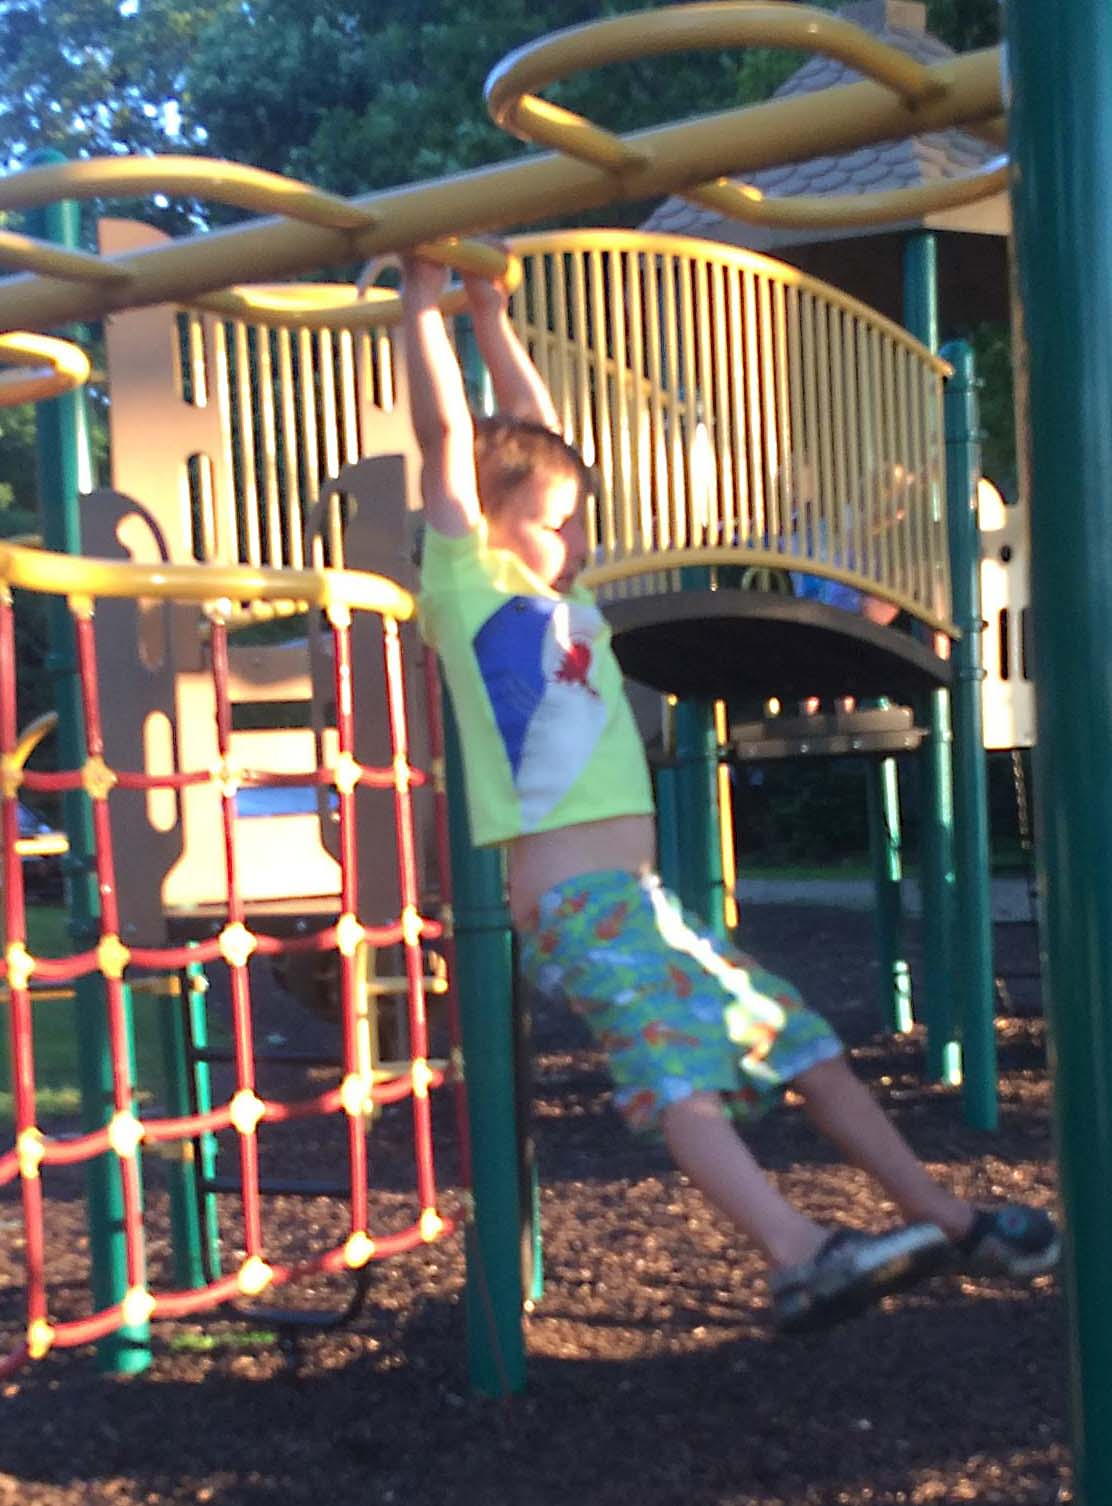 Ollie getting the hang of monkey bars - just hope his pants stay put!